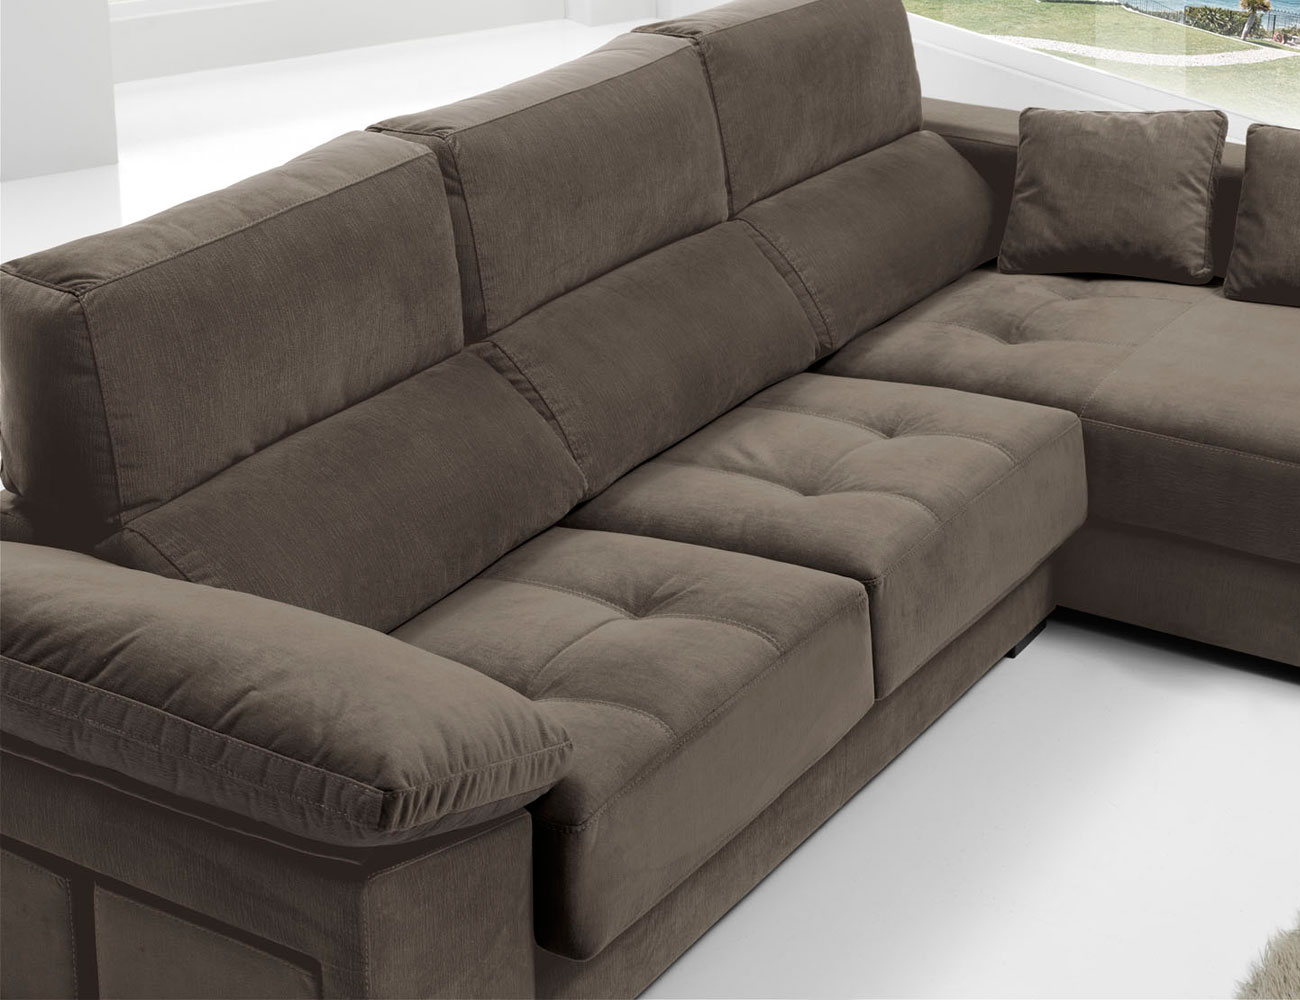 Sofa chaiselongue anti manchas bering pouf 272